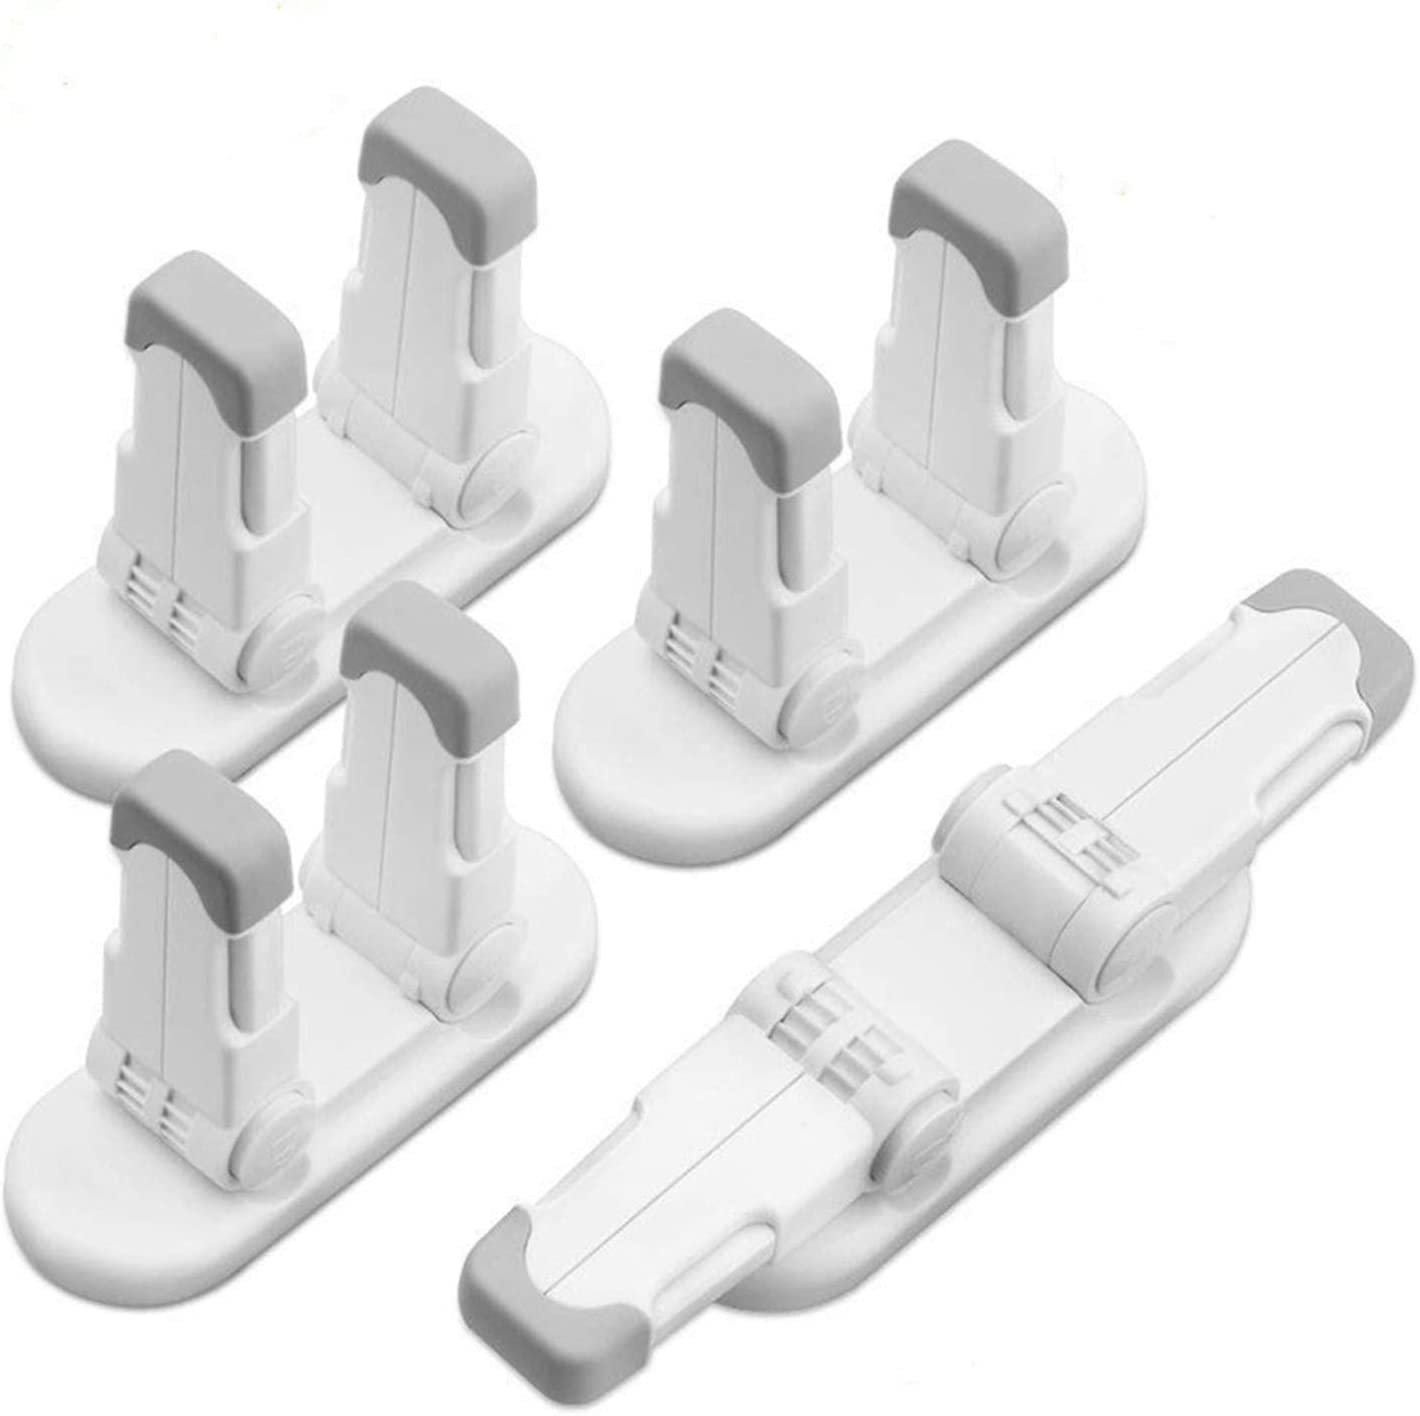 4-Pack Improved Childproof Door Indianapolis Mall Lever Fro Our shop OFFers the best service Toddlers Lock Prevents